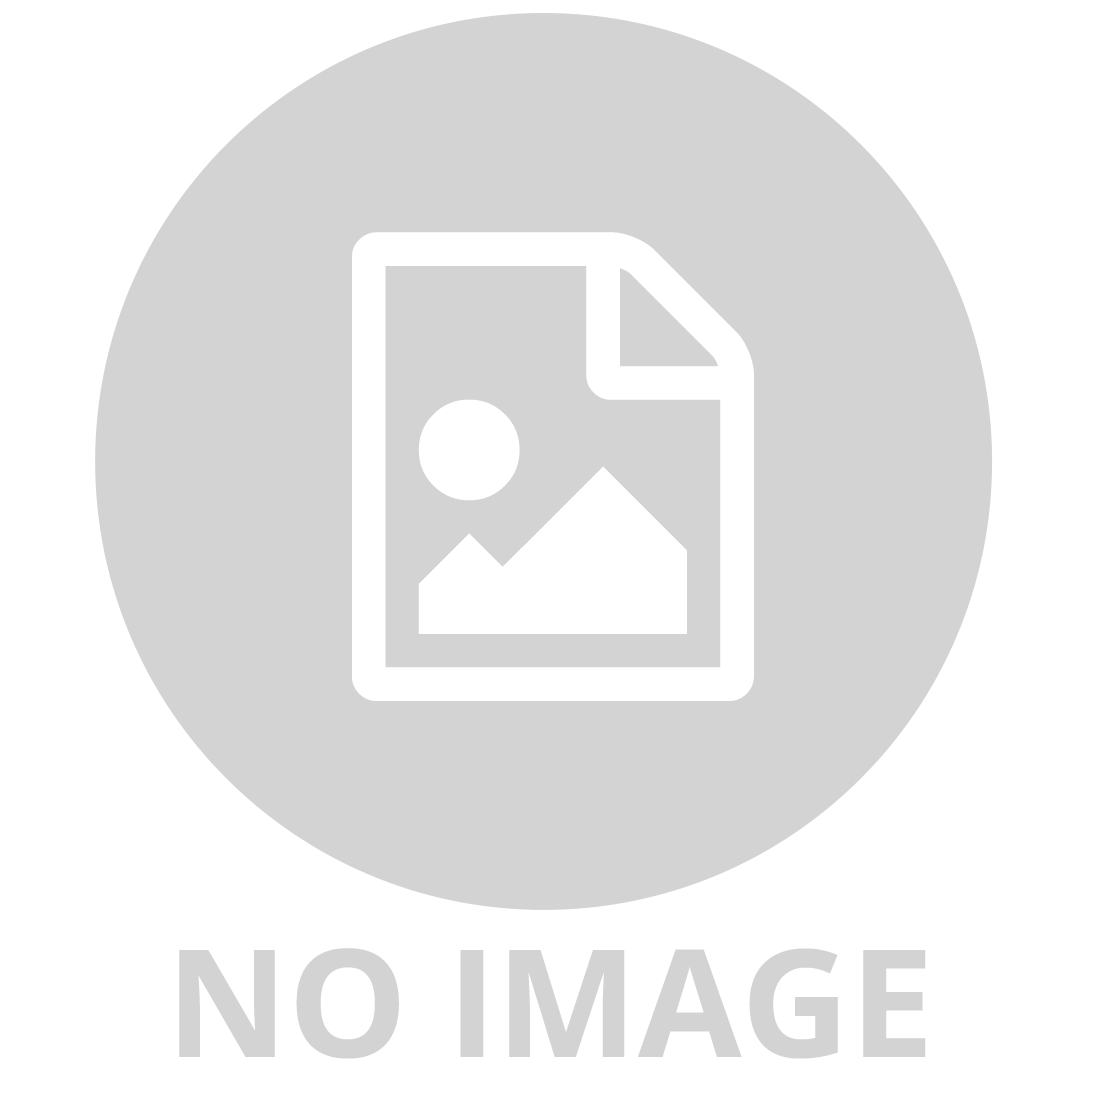 FIREMAN SAM VEHICLE AND ACCESSORY - NEPTUNE